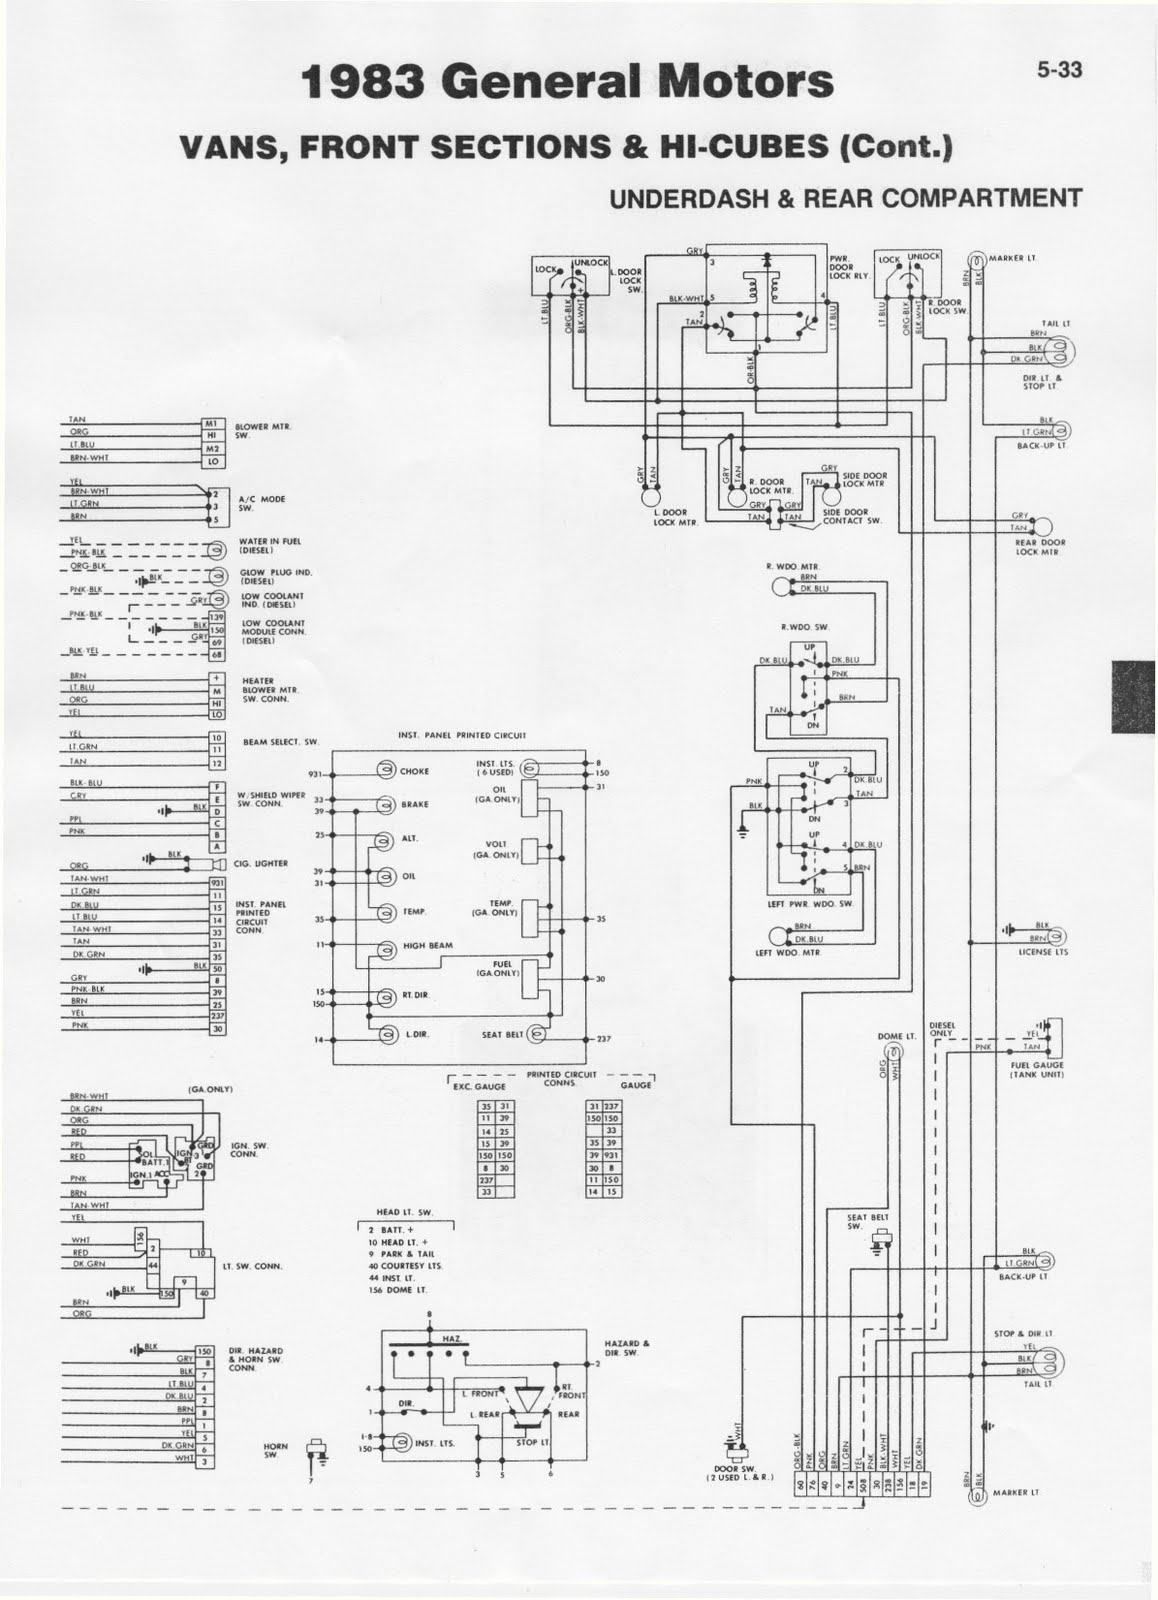 Fleetwood Rv Schematics Great Design Of Wiring Diagram Camera 1988 Battery Back Up Panasonic